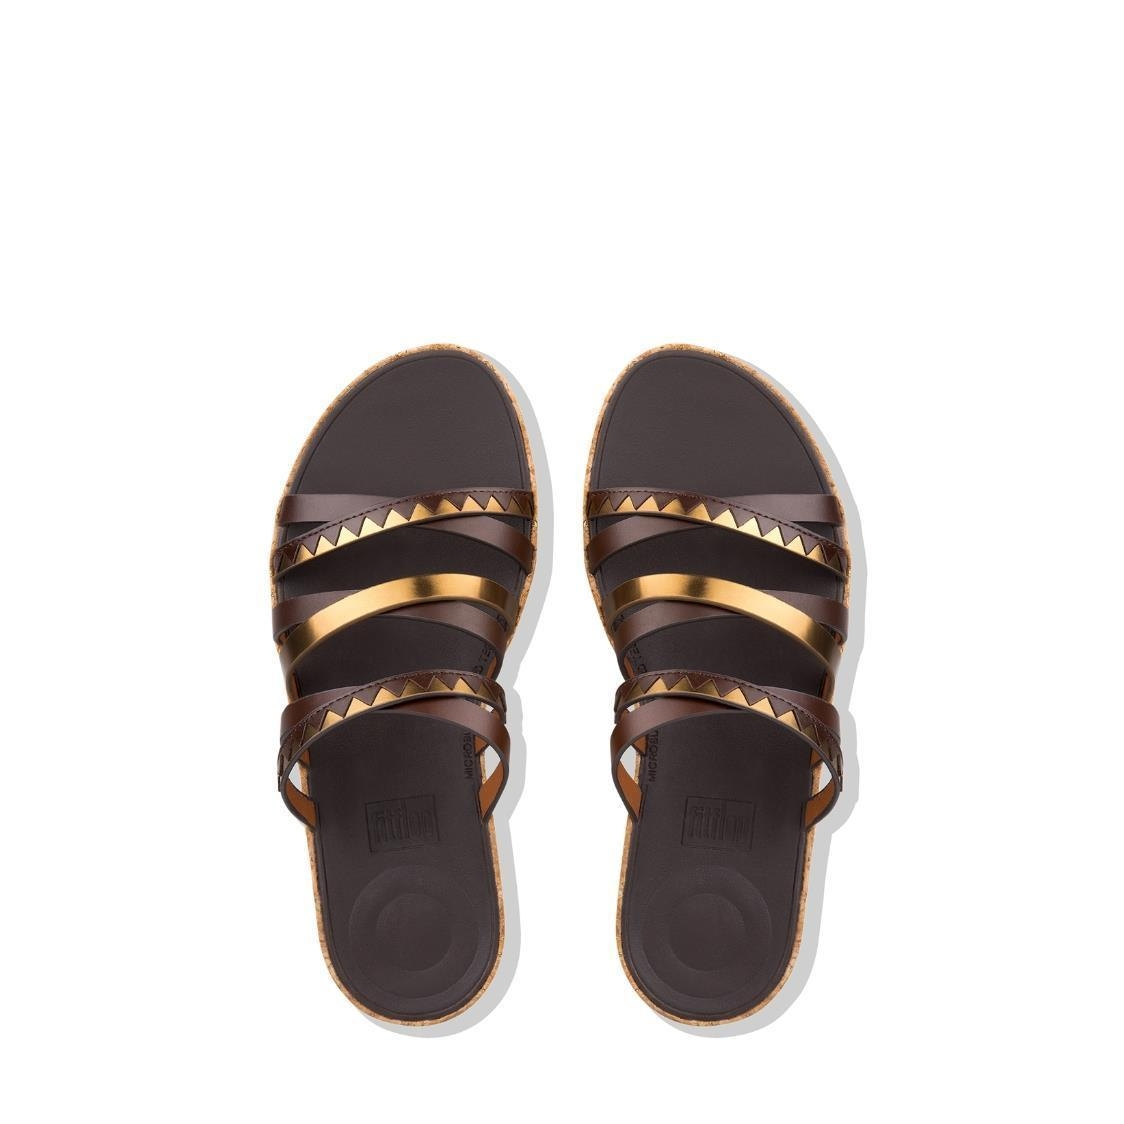 Linny Zigzag Mirror Slide Sandals EspressoBronze